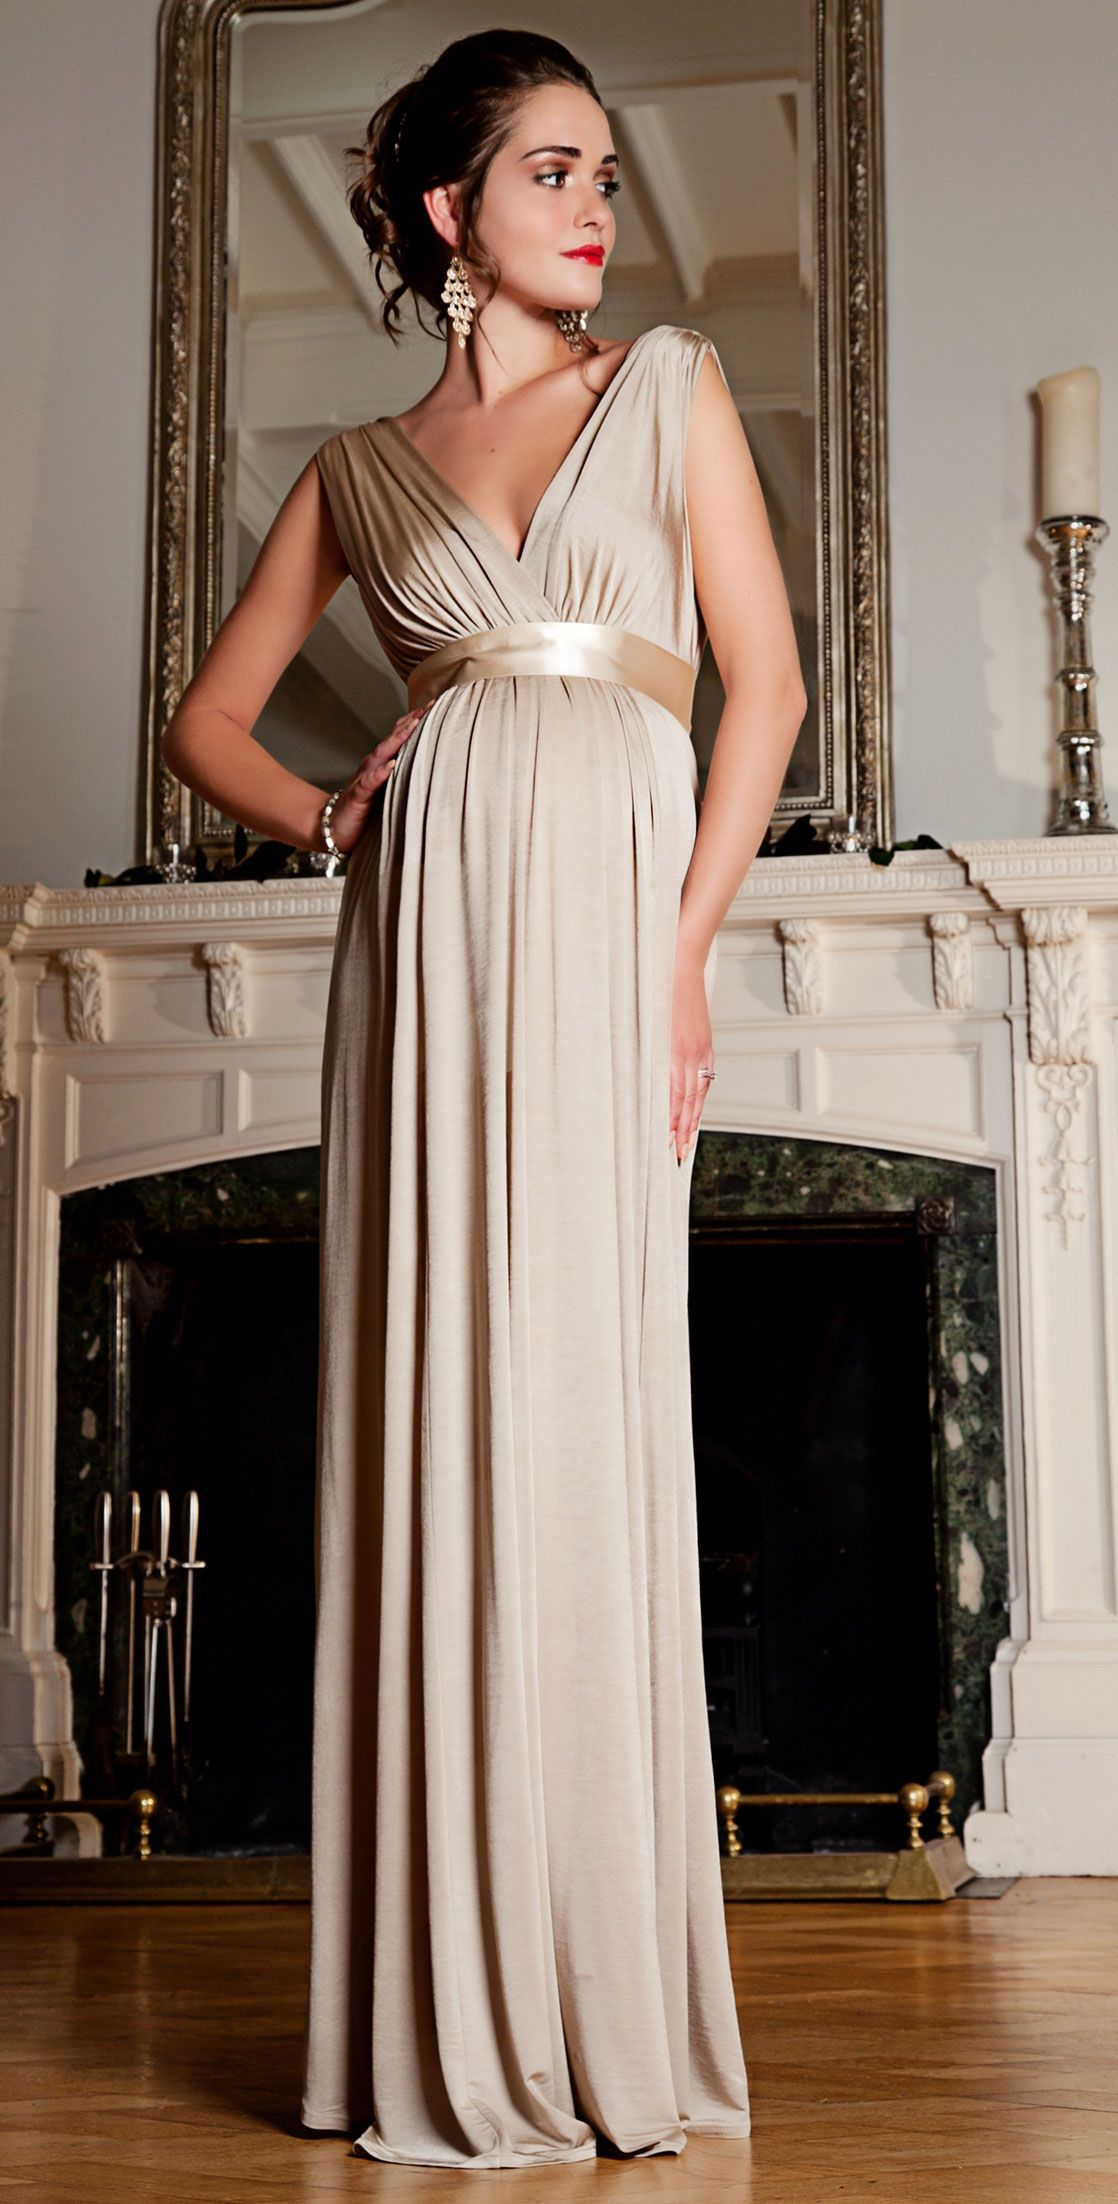 Pin by Roanne Ayangco on Wedding Ideas   Pinterest   Maternity ...